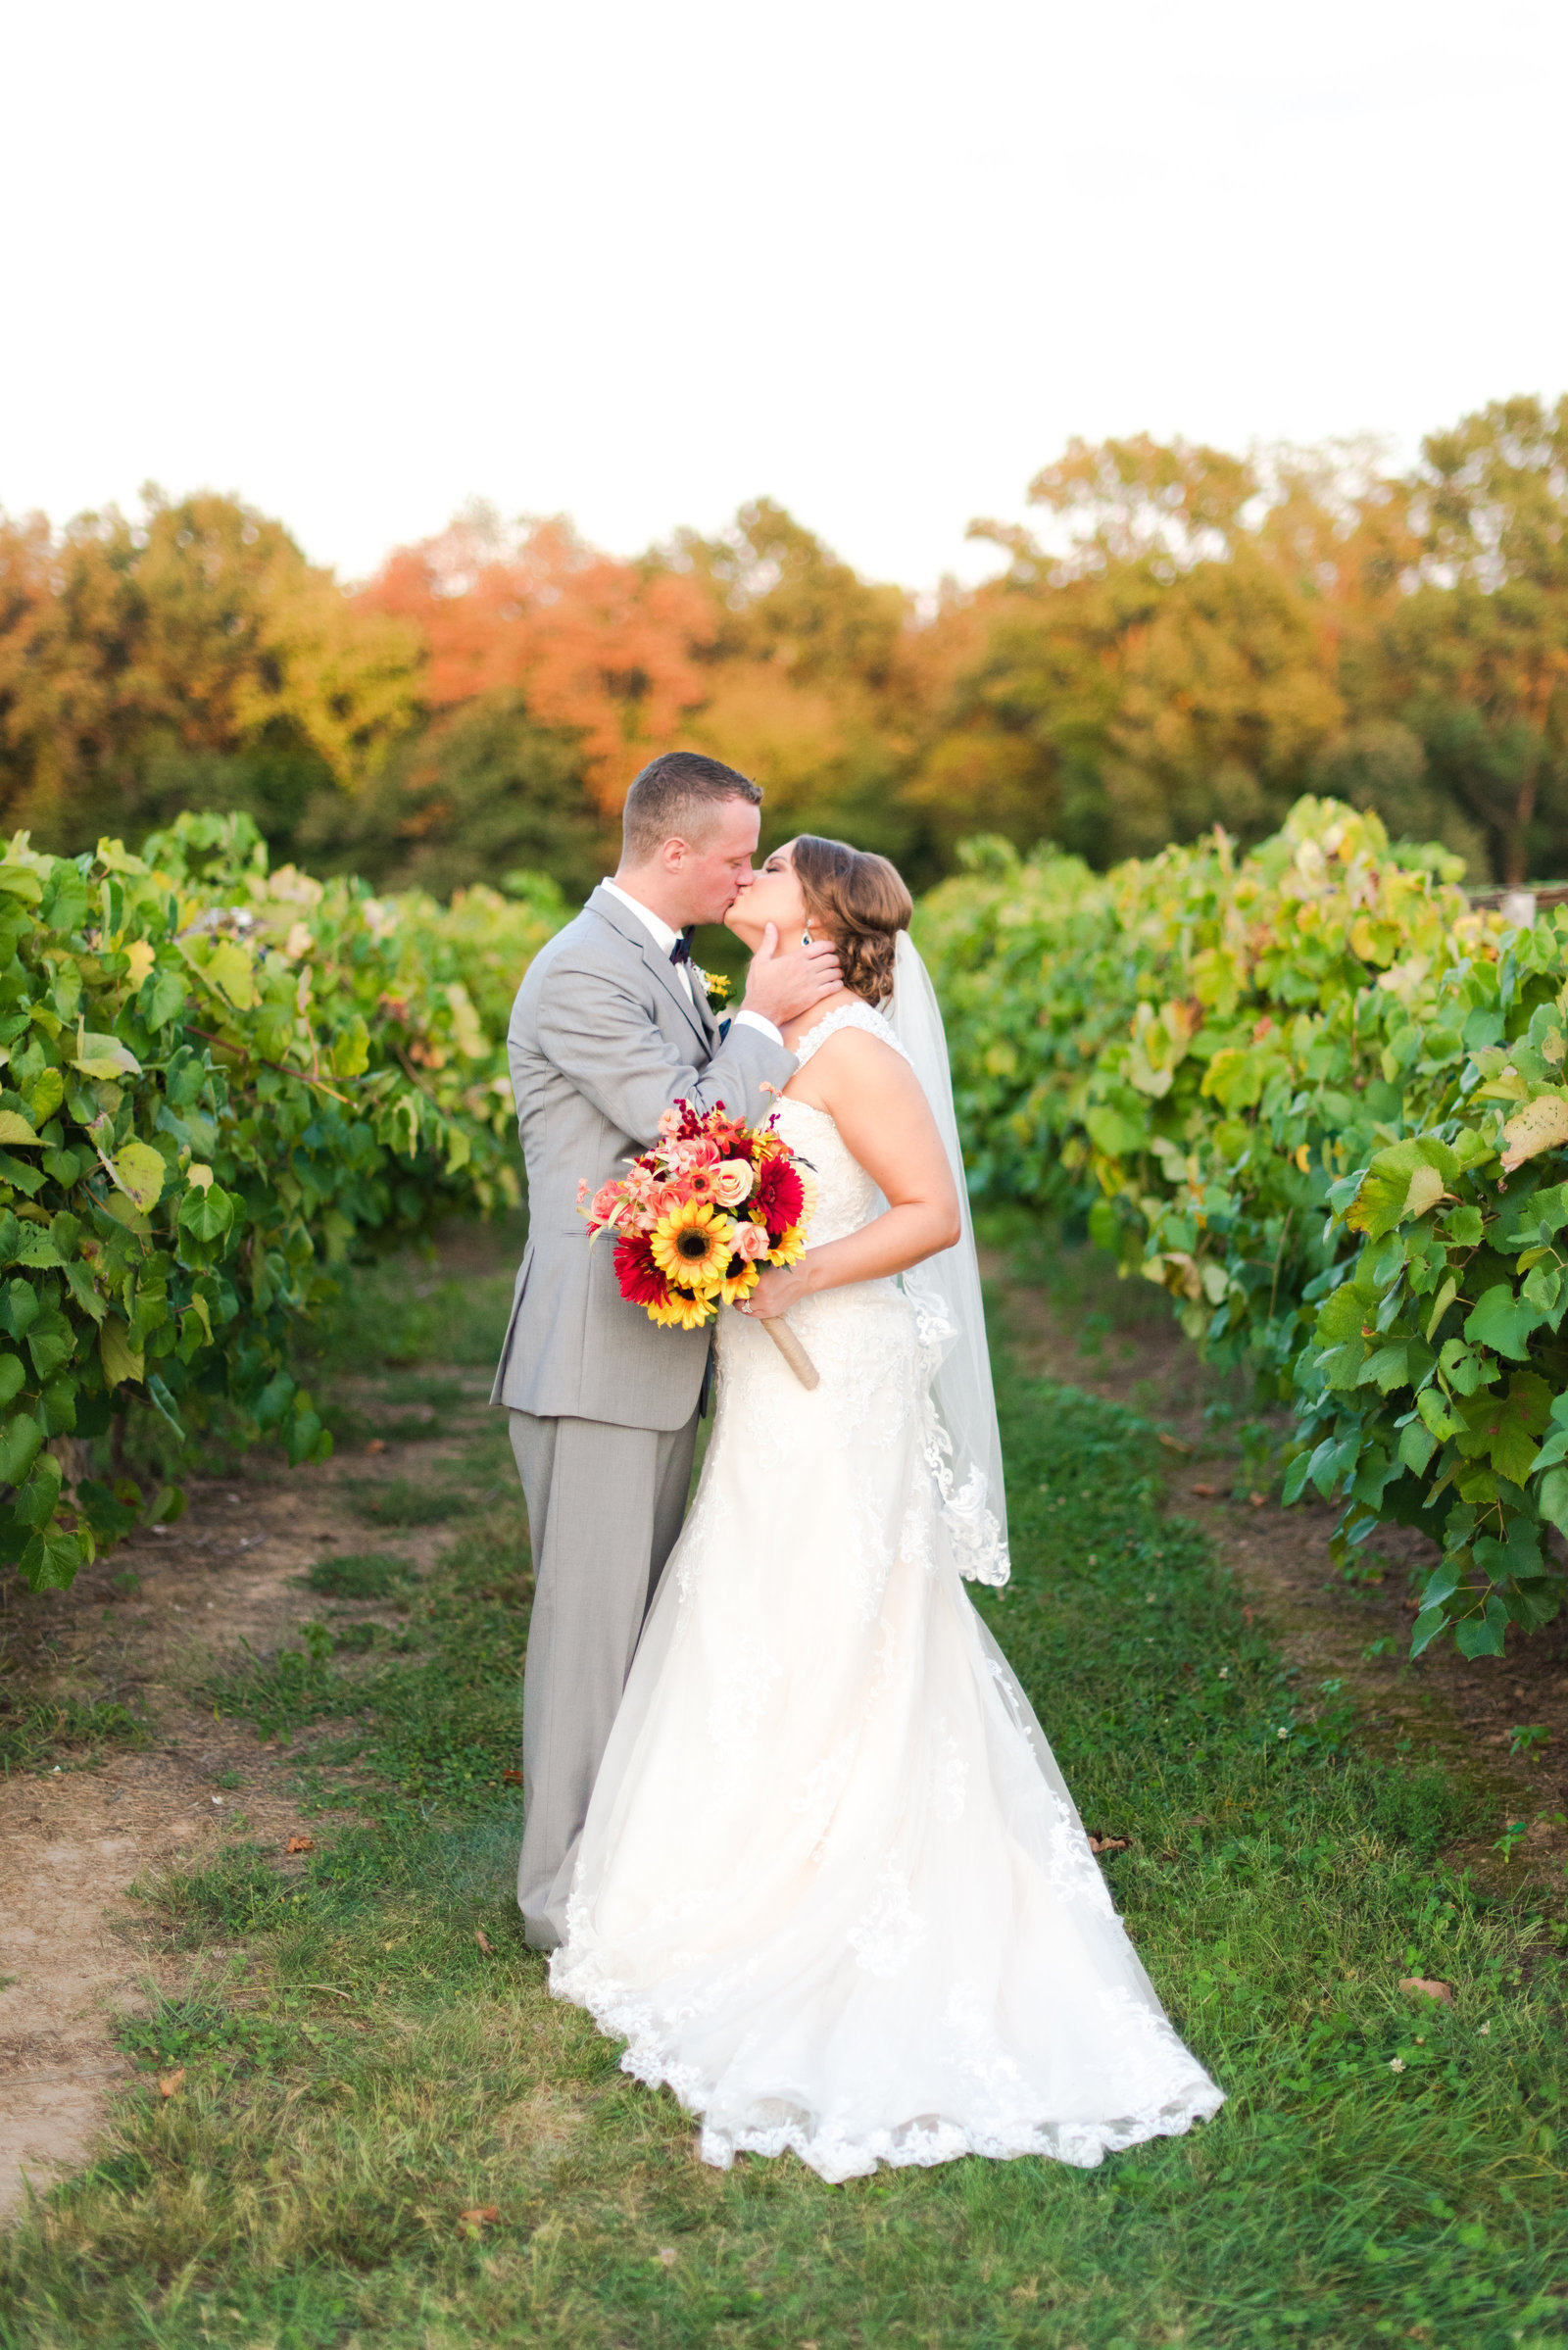 Brittany+Mike_Weddig-236